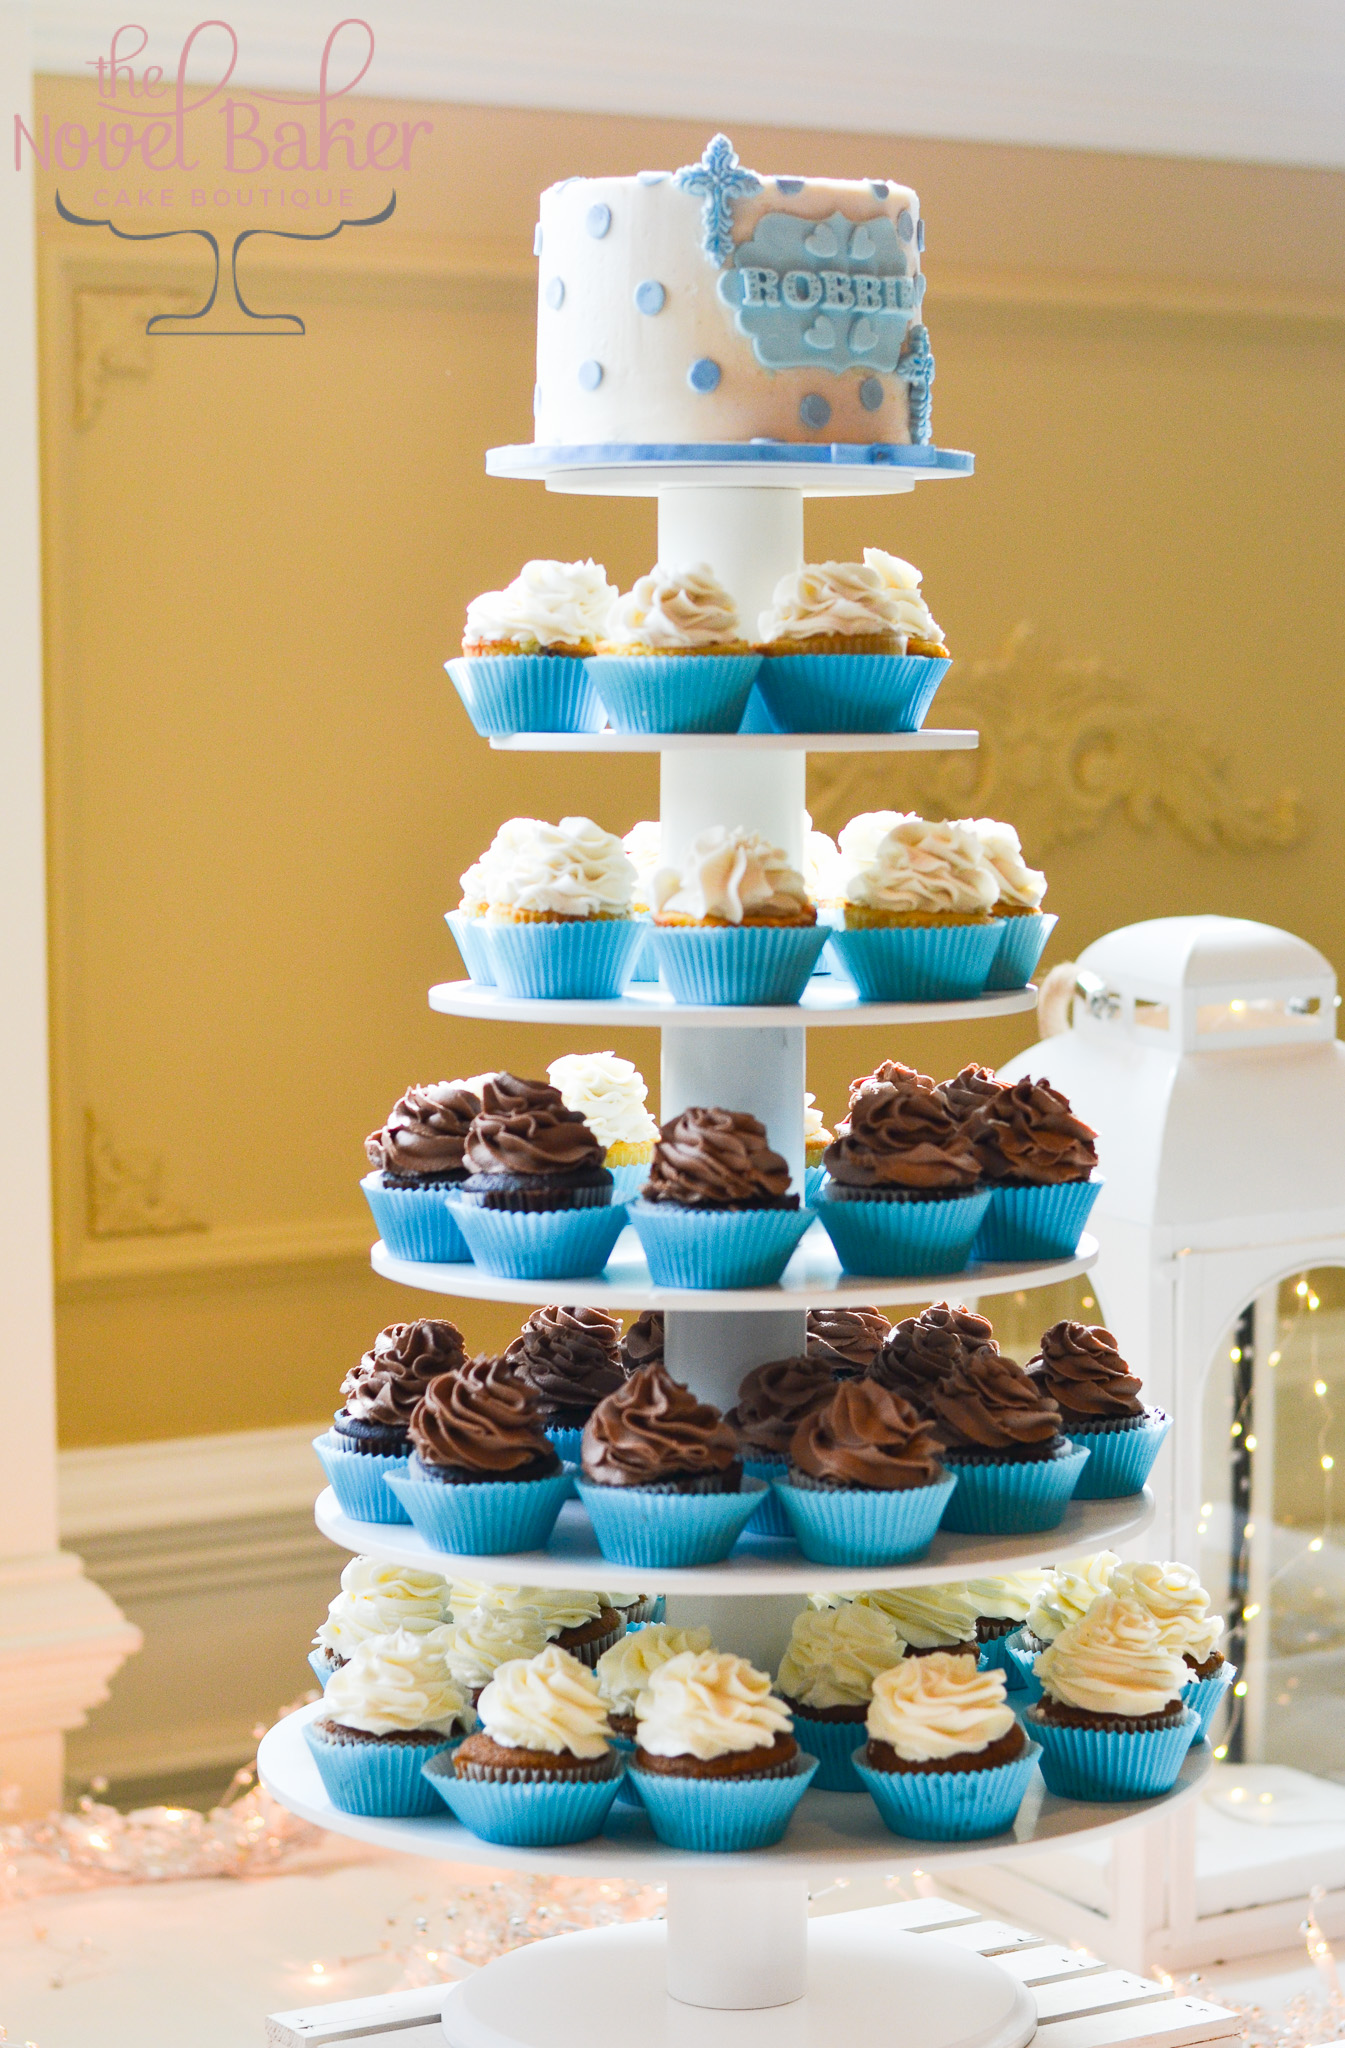 Chocolate and Vanilla Cupcakes in blue liners. a white topper cake with blue dots, name plaque and crosses.